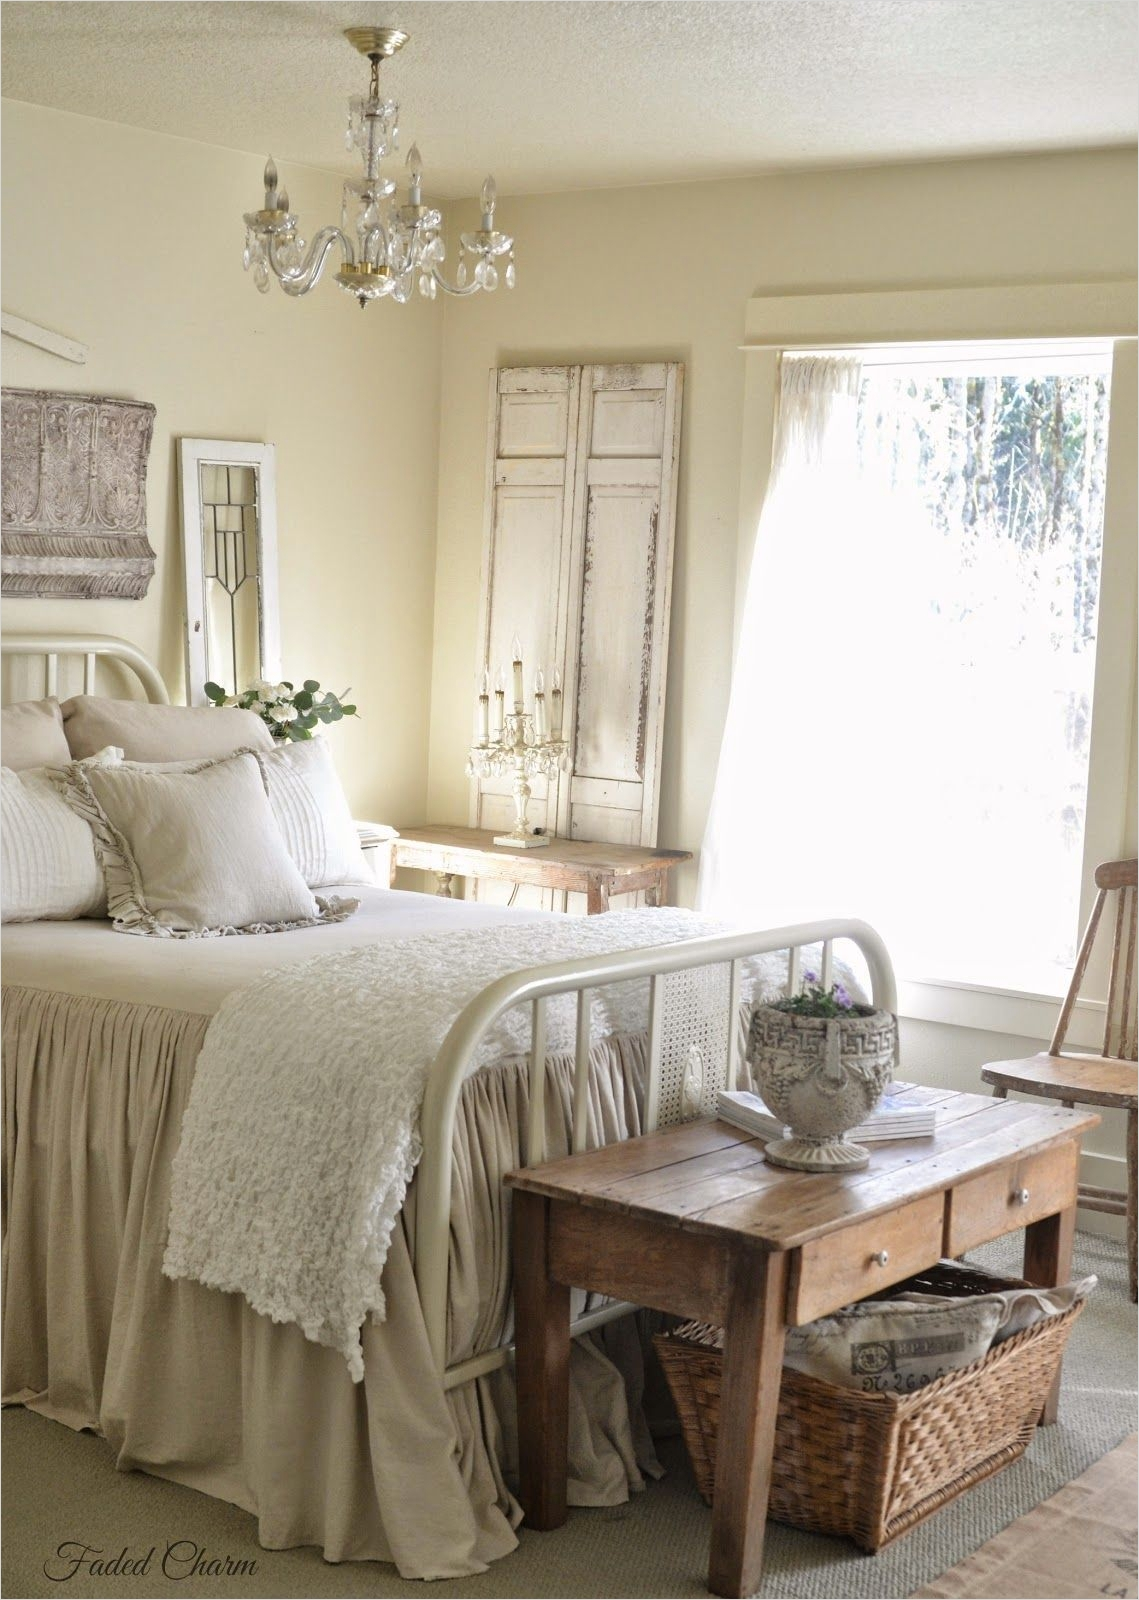 43 Stunning Country Farmhouse Bedroom Ideas 29 Farmhouse Bedroom Salvaged Architectural Pieces and Mismatched Furniture with Painted and 1